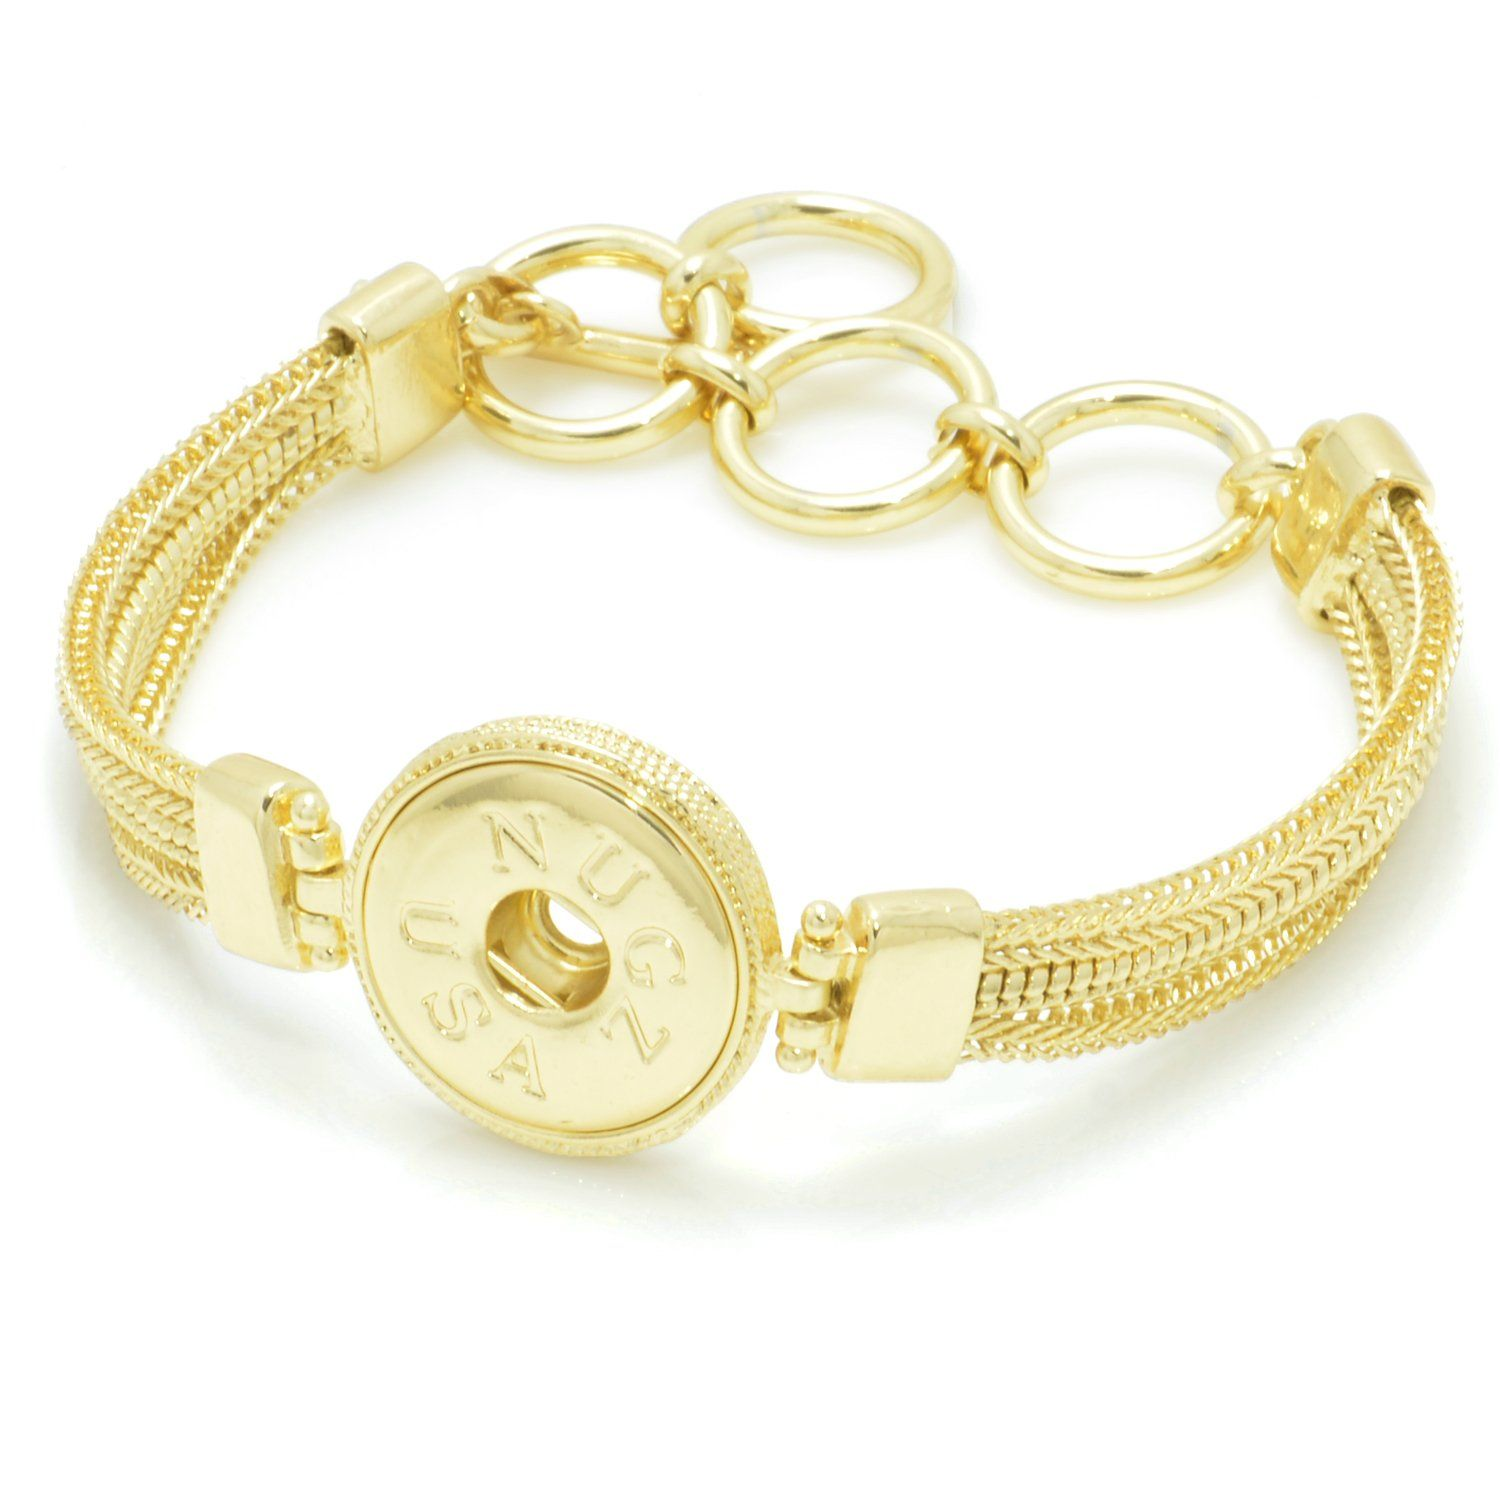 global jewelry interchangeable inflow snaps fits coil cancel s snap res content inflowcomponent bracelet p button ginger